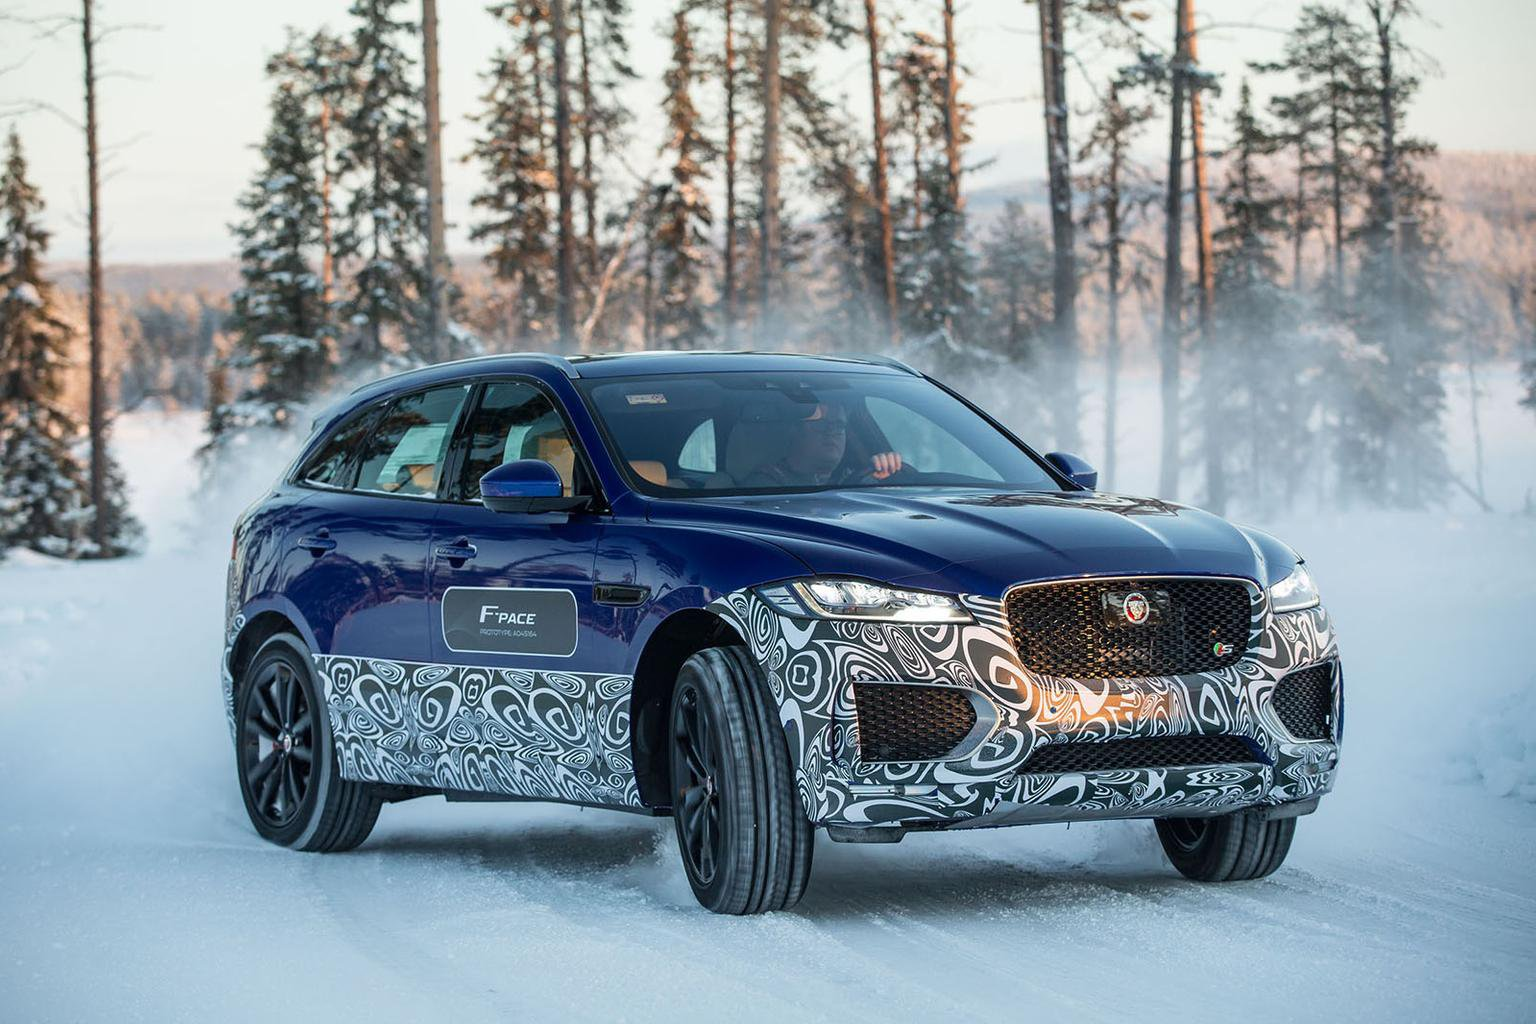 2016 Jaguar F-Pace 3.0 V6 review